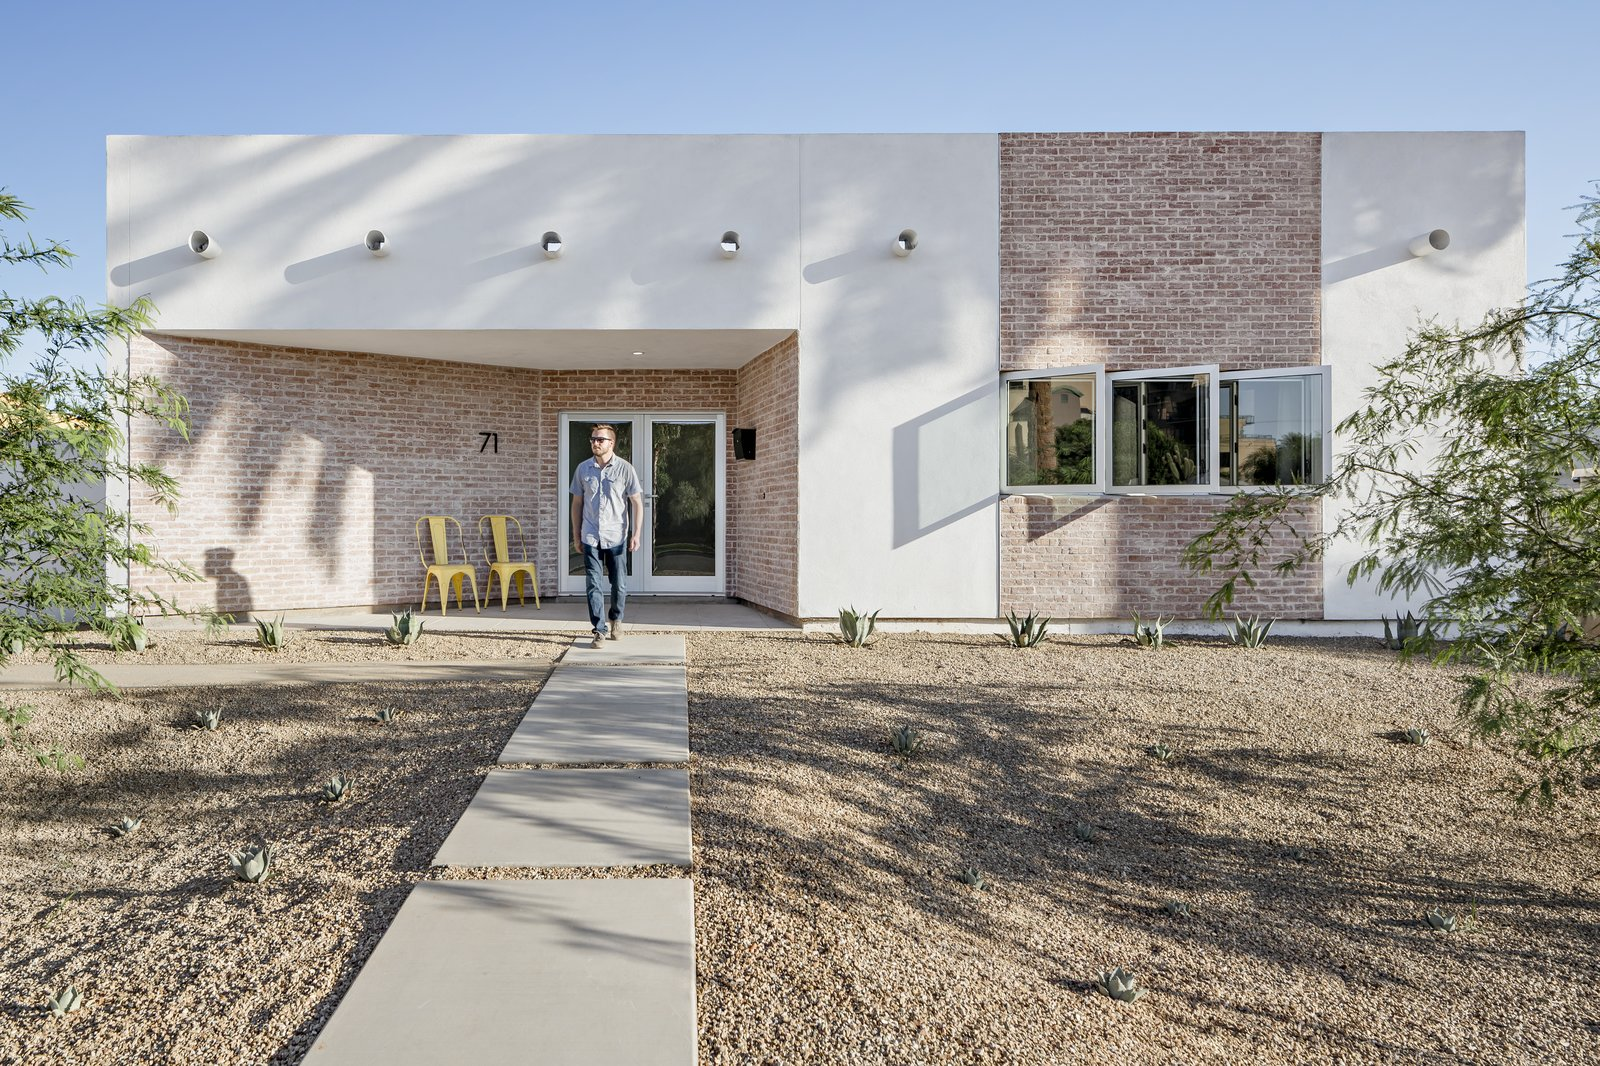 The front uses common materials to the neighborhood in a new modern way. A recessed front porch walls flare out as if to welcome the community Tagged: Outdoor, Front Yard, Shrubs, Desert, Small Patio, Porch, Deck, Decomposed Granite Patio, Porch, Deck, Pavers Patio, Porch, Deck, and Walkways.  Sol House by The Ranch Mine